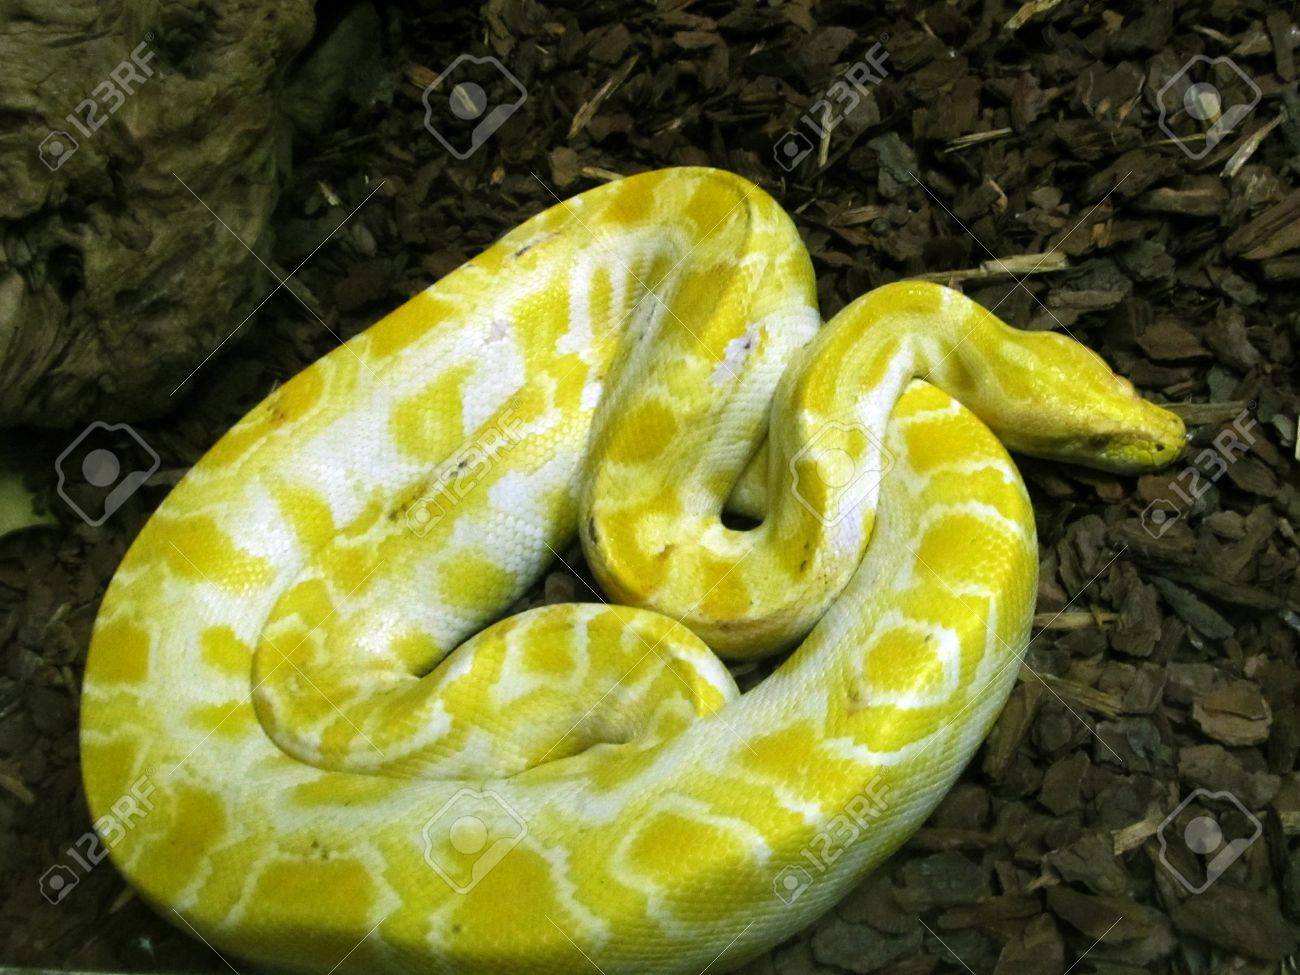 Coiled up large yellow and white Burmese Python Stock Photo - 10049206